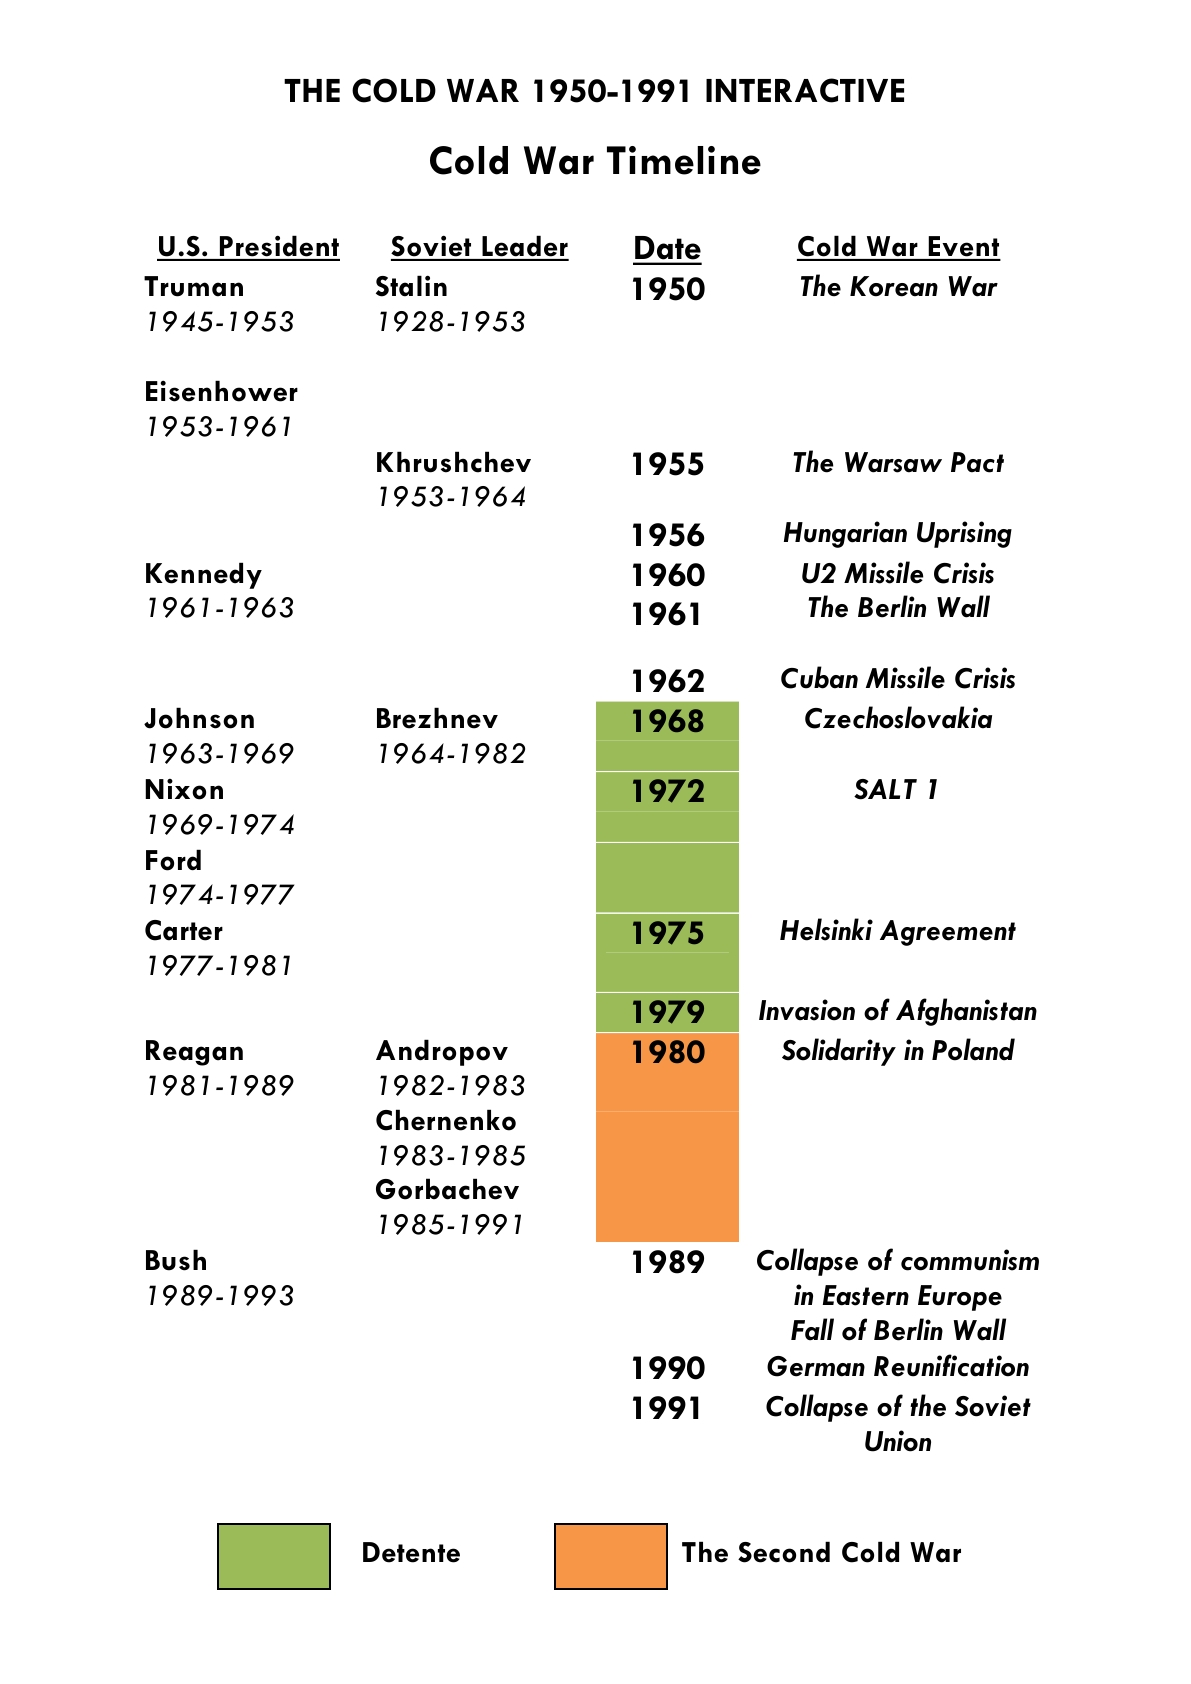 time line of the cold war This a timeline of the main events of the cold war, a state of political and military tension after world war ii between powers in the western bloc (the united states, it's nato allies and others) and powers in the eastern bloc (the soviet union, its allies in the warsaw pact and later the people's republic of china.